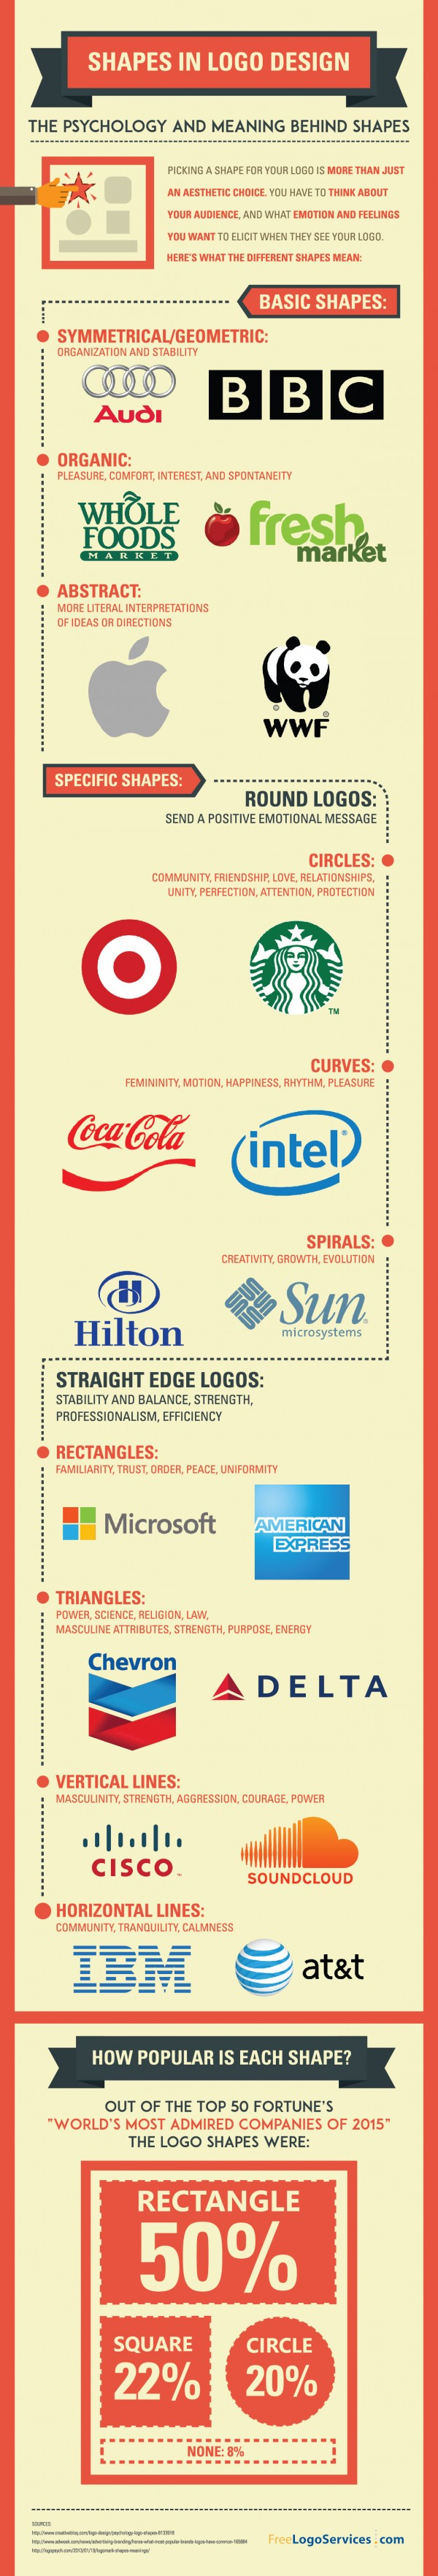 shapes-logos-infographics.jpg